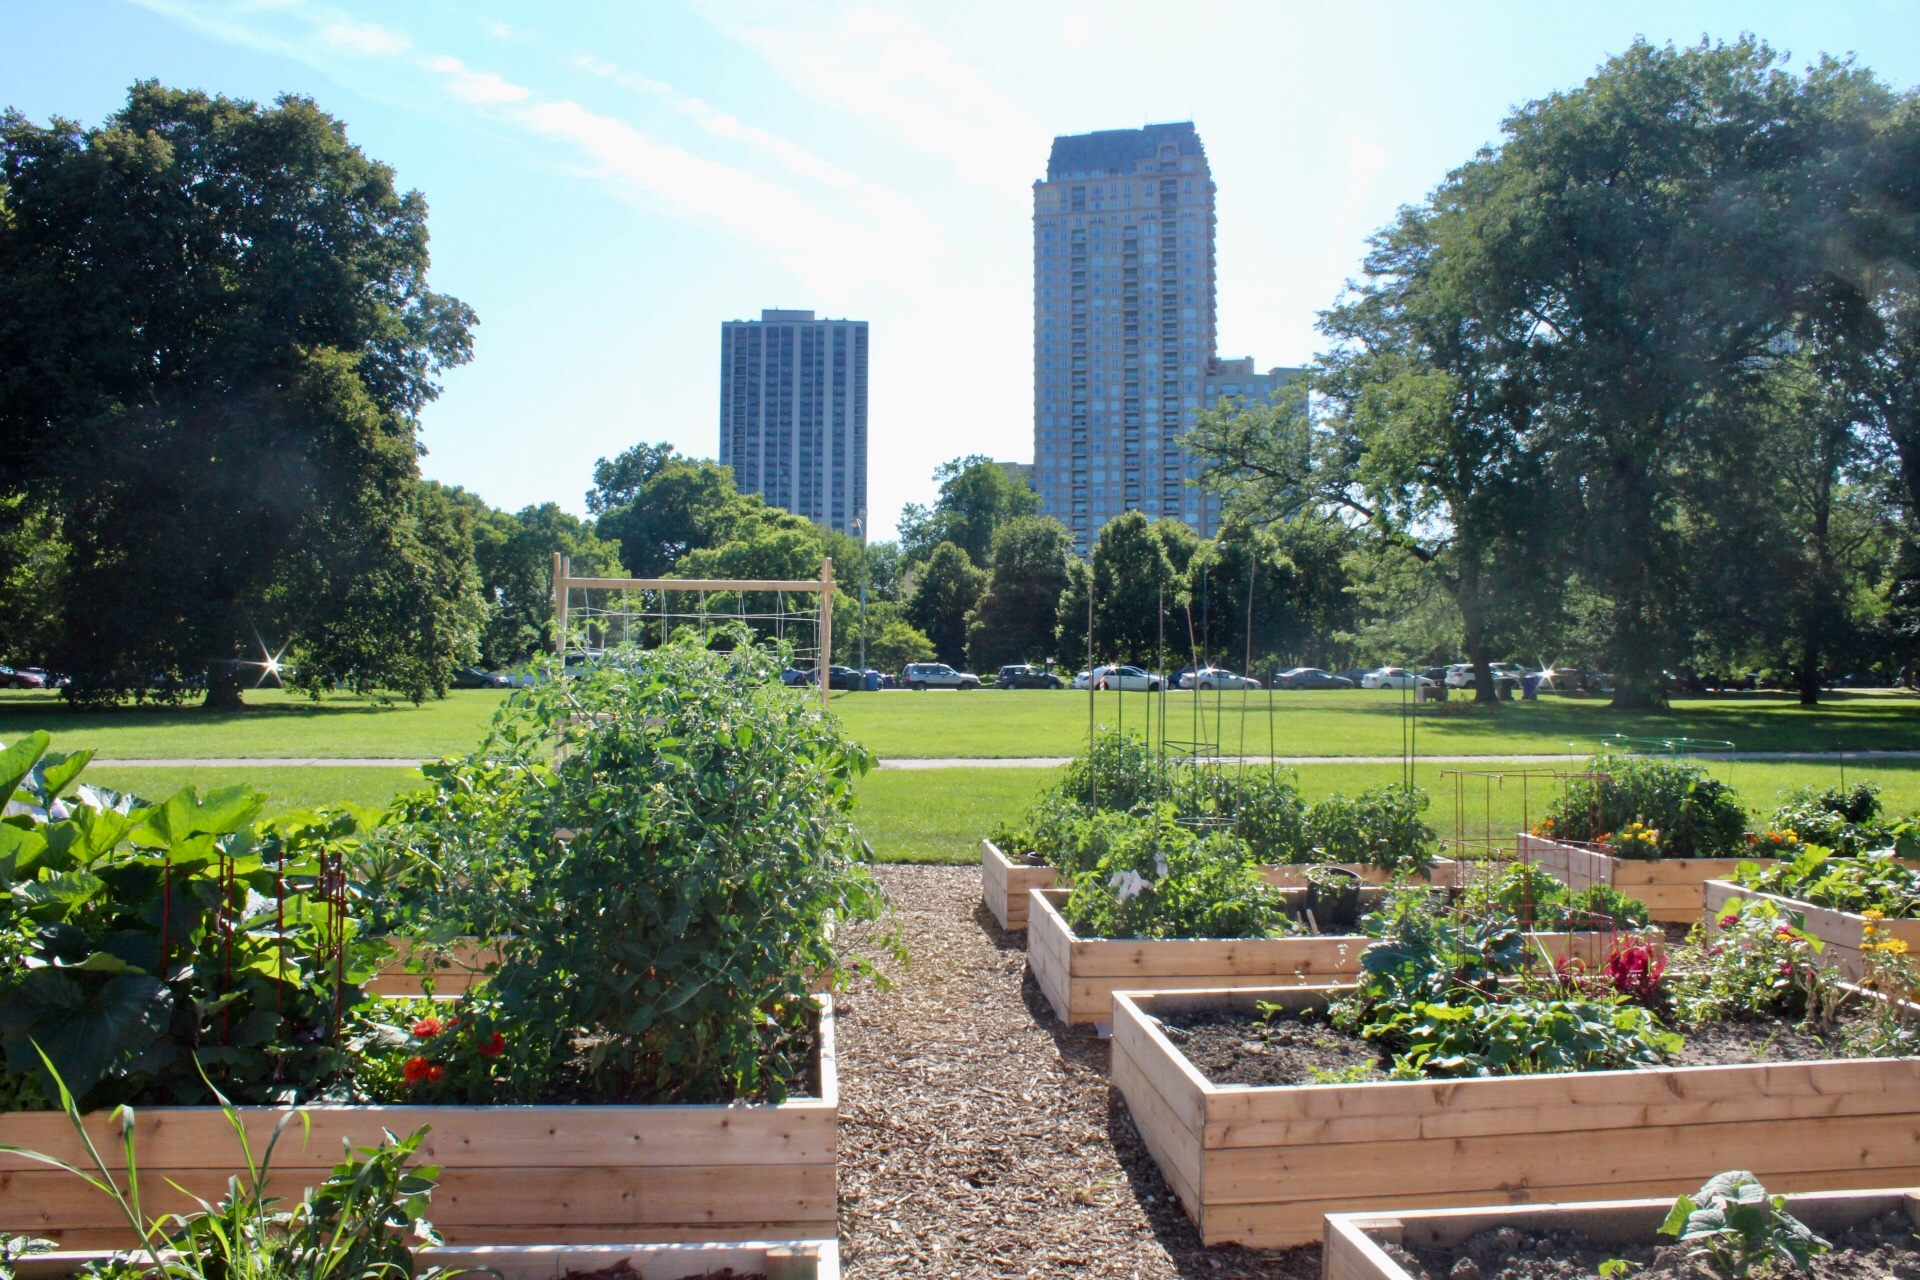 Diversey Harbor Community Garden